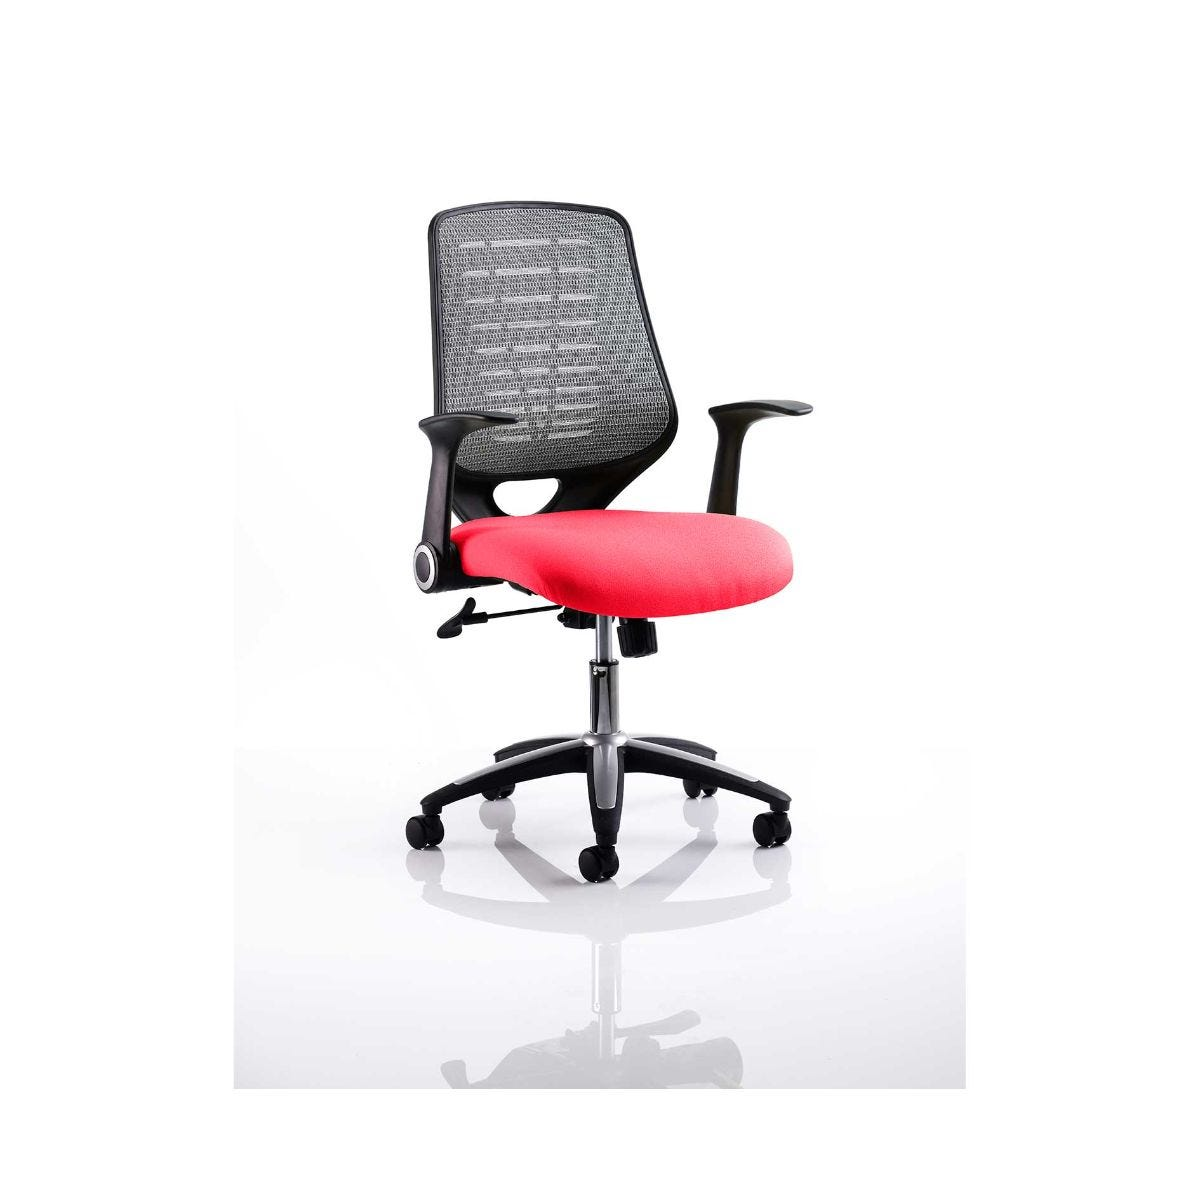 Relay Mesh Back Office Chair Silver, Cherry